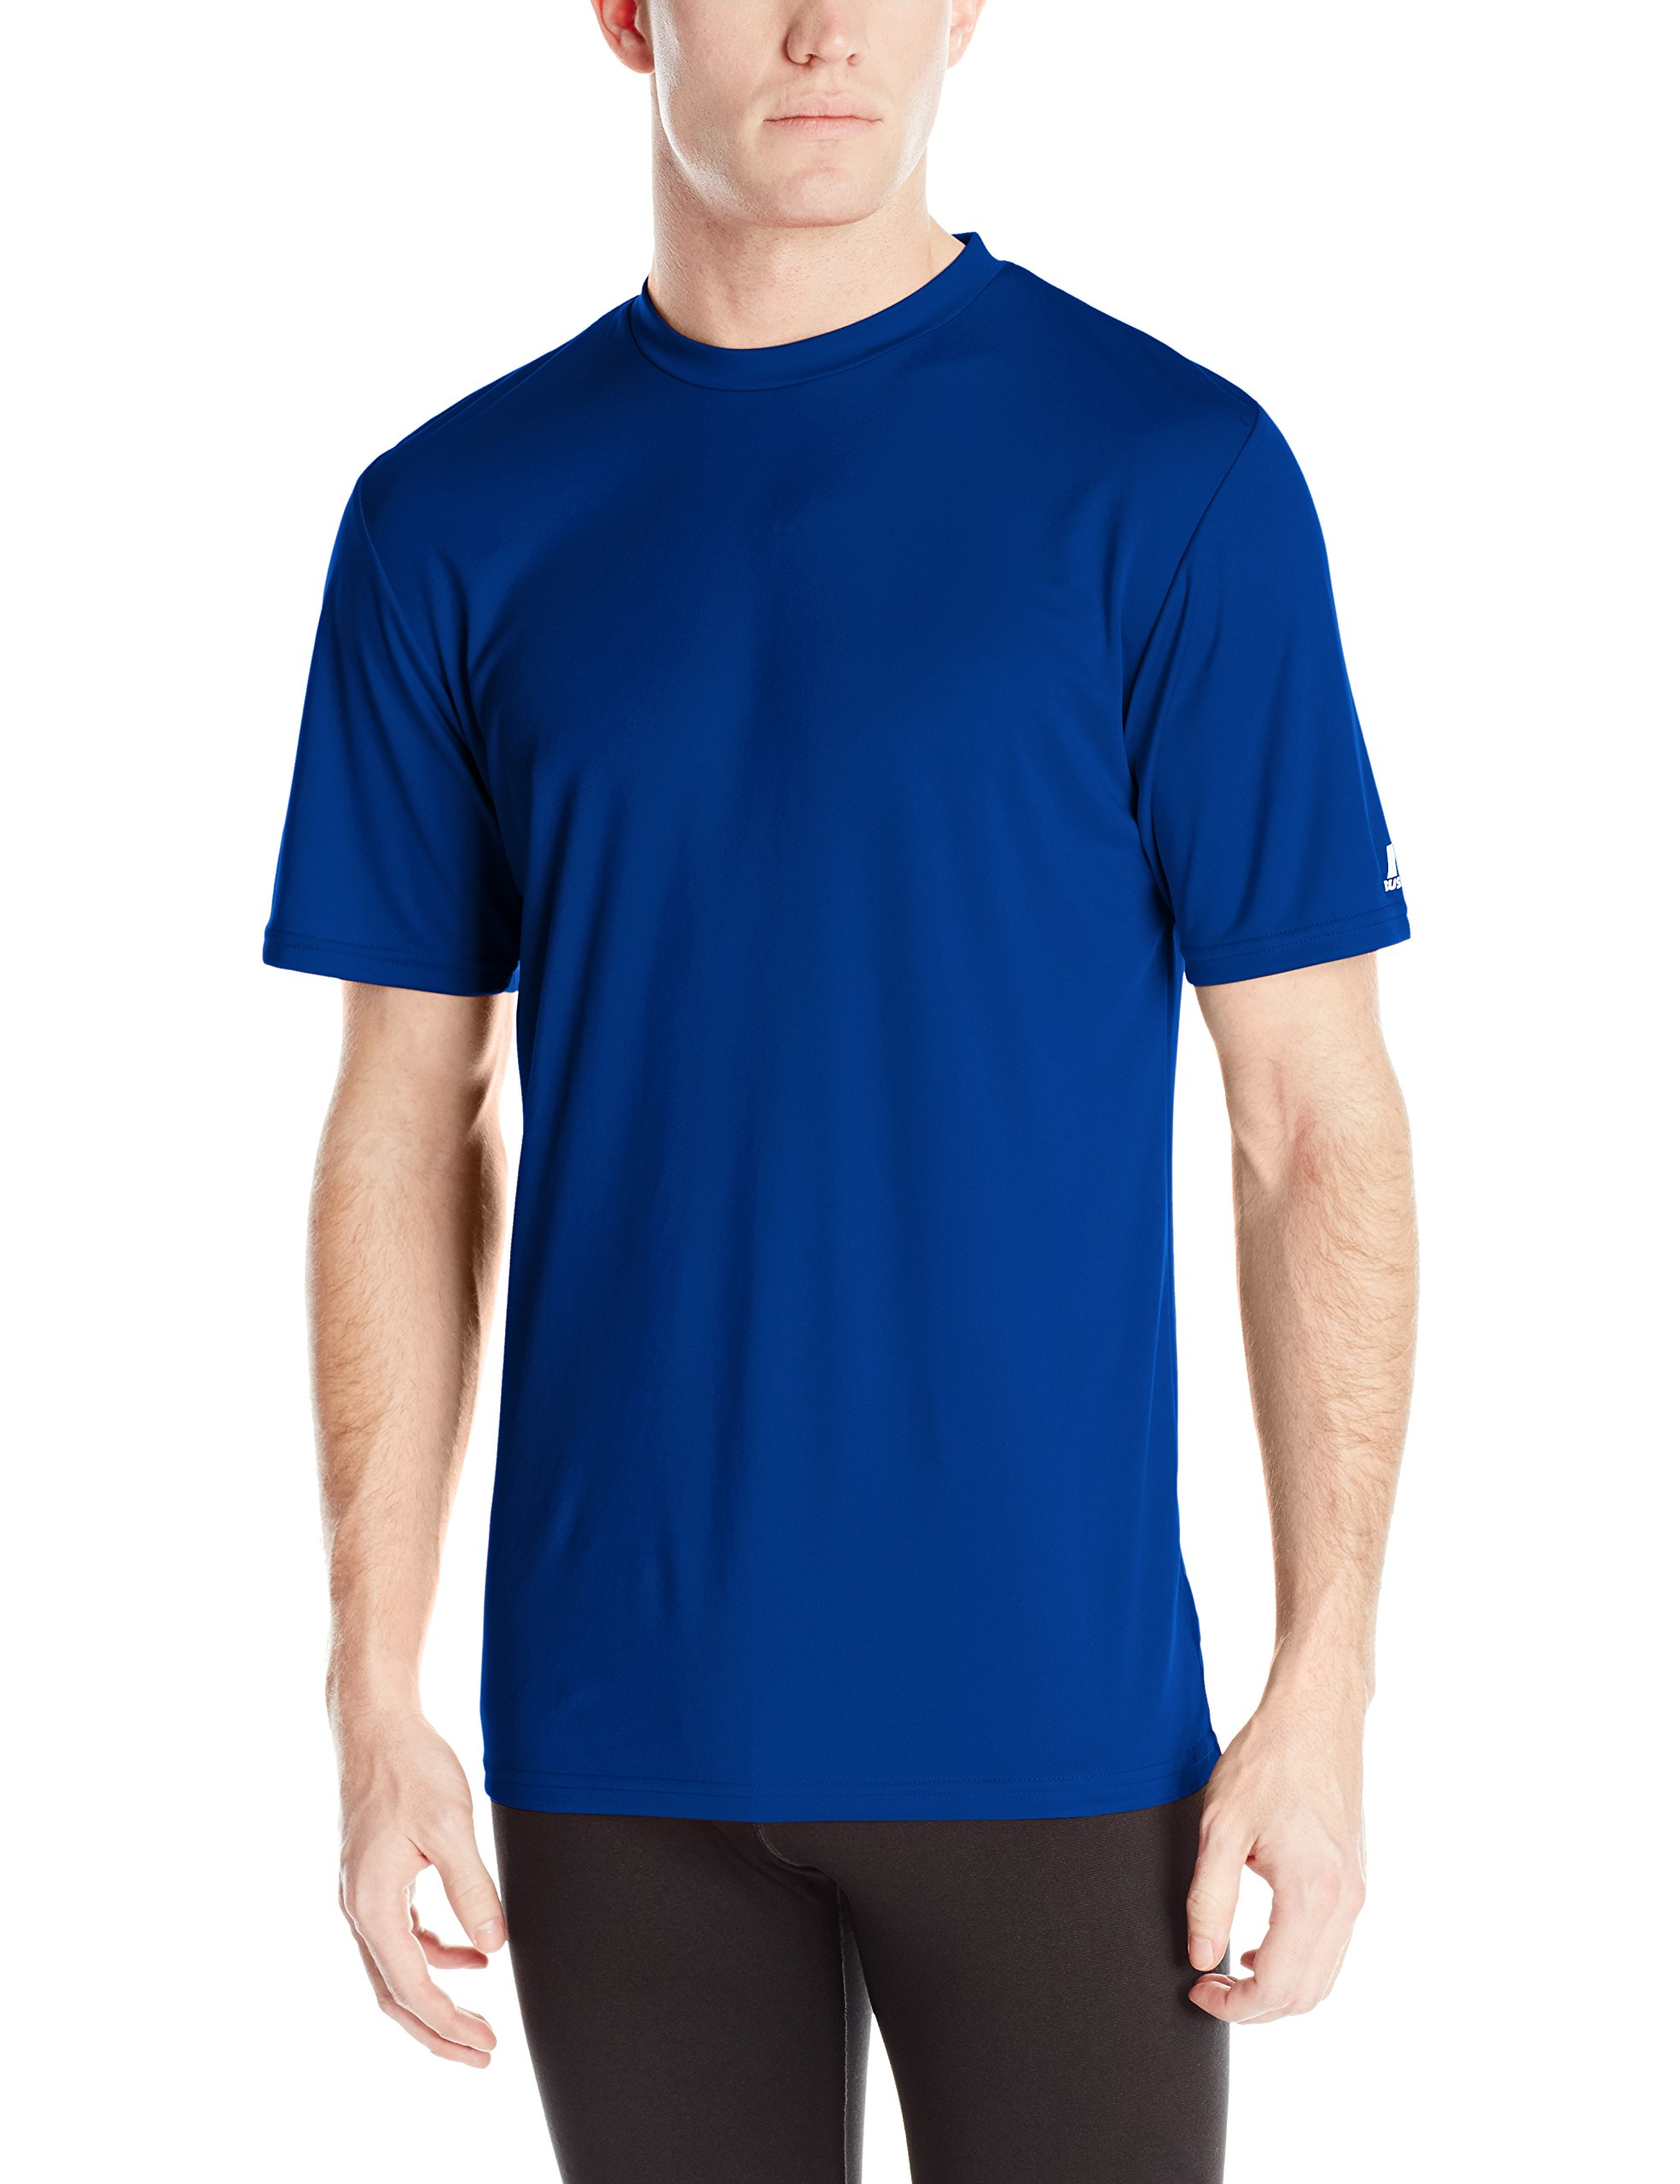 Russell Athletic Men's Performance T-Shirt, Royal, Large by Russell Athletic